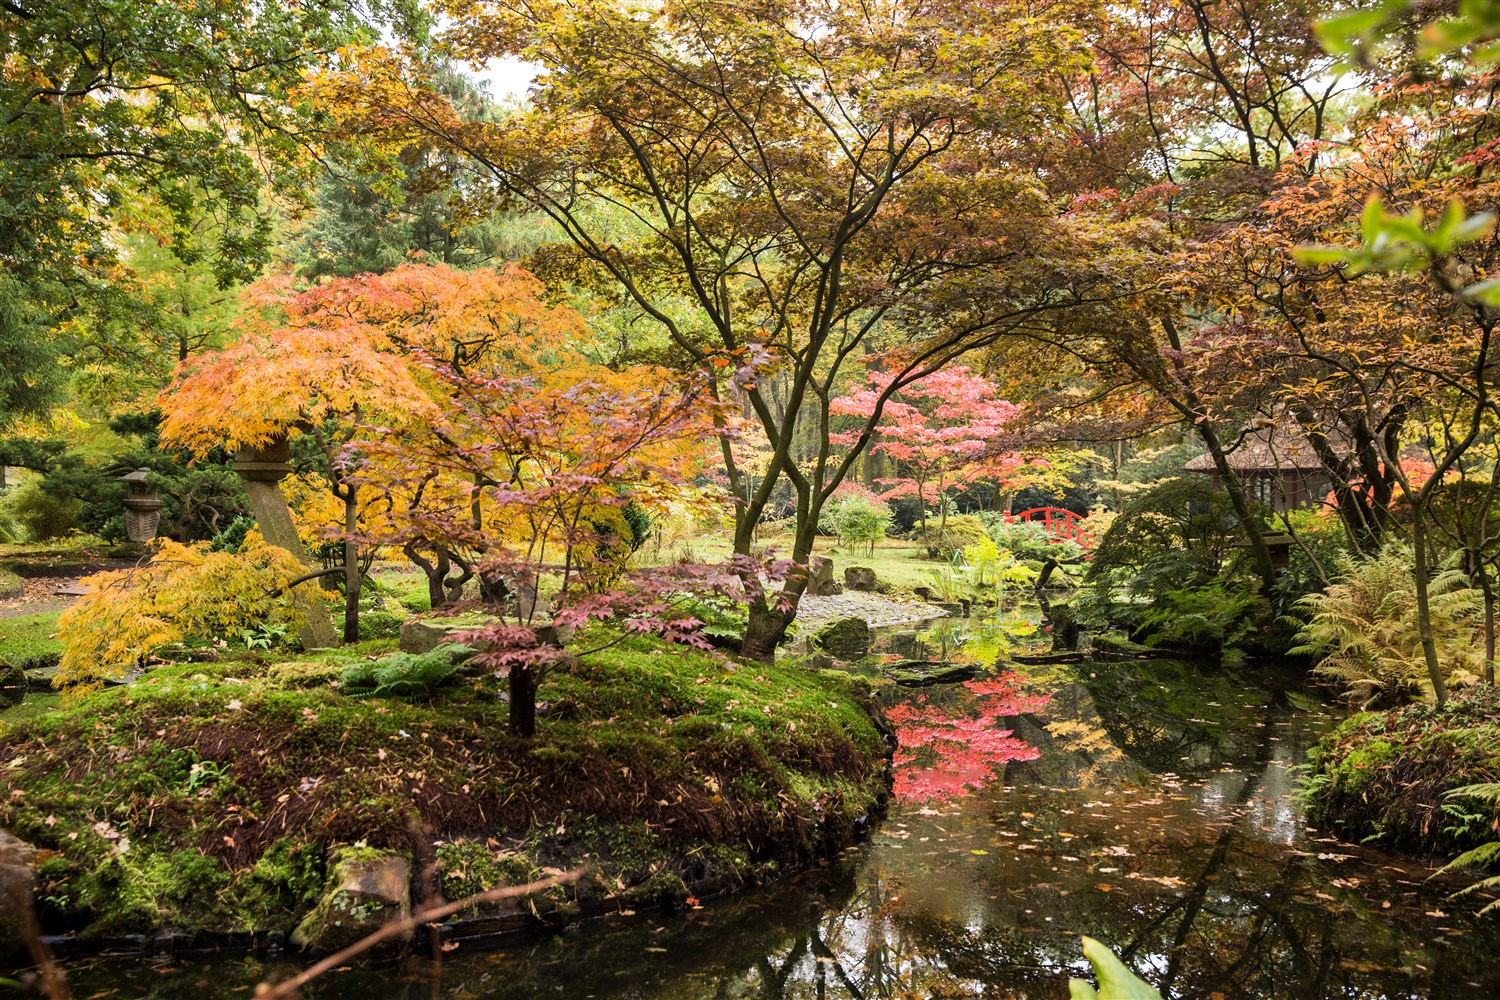 The Japanese Garden in The Hague, The Netherlands